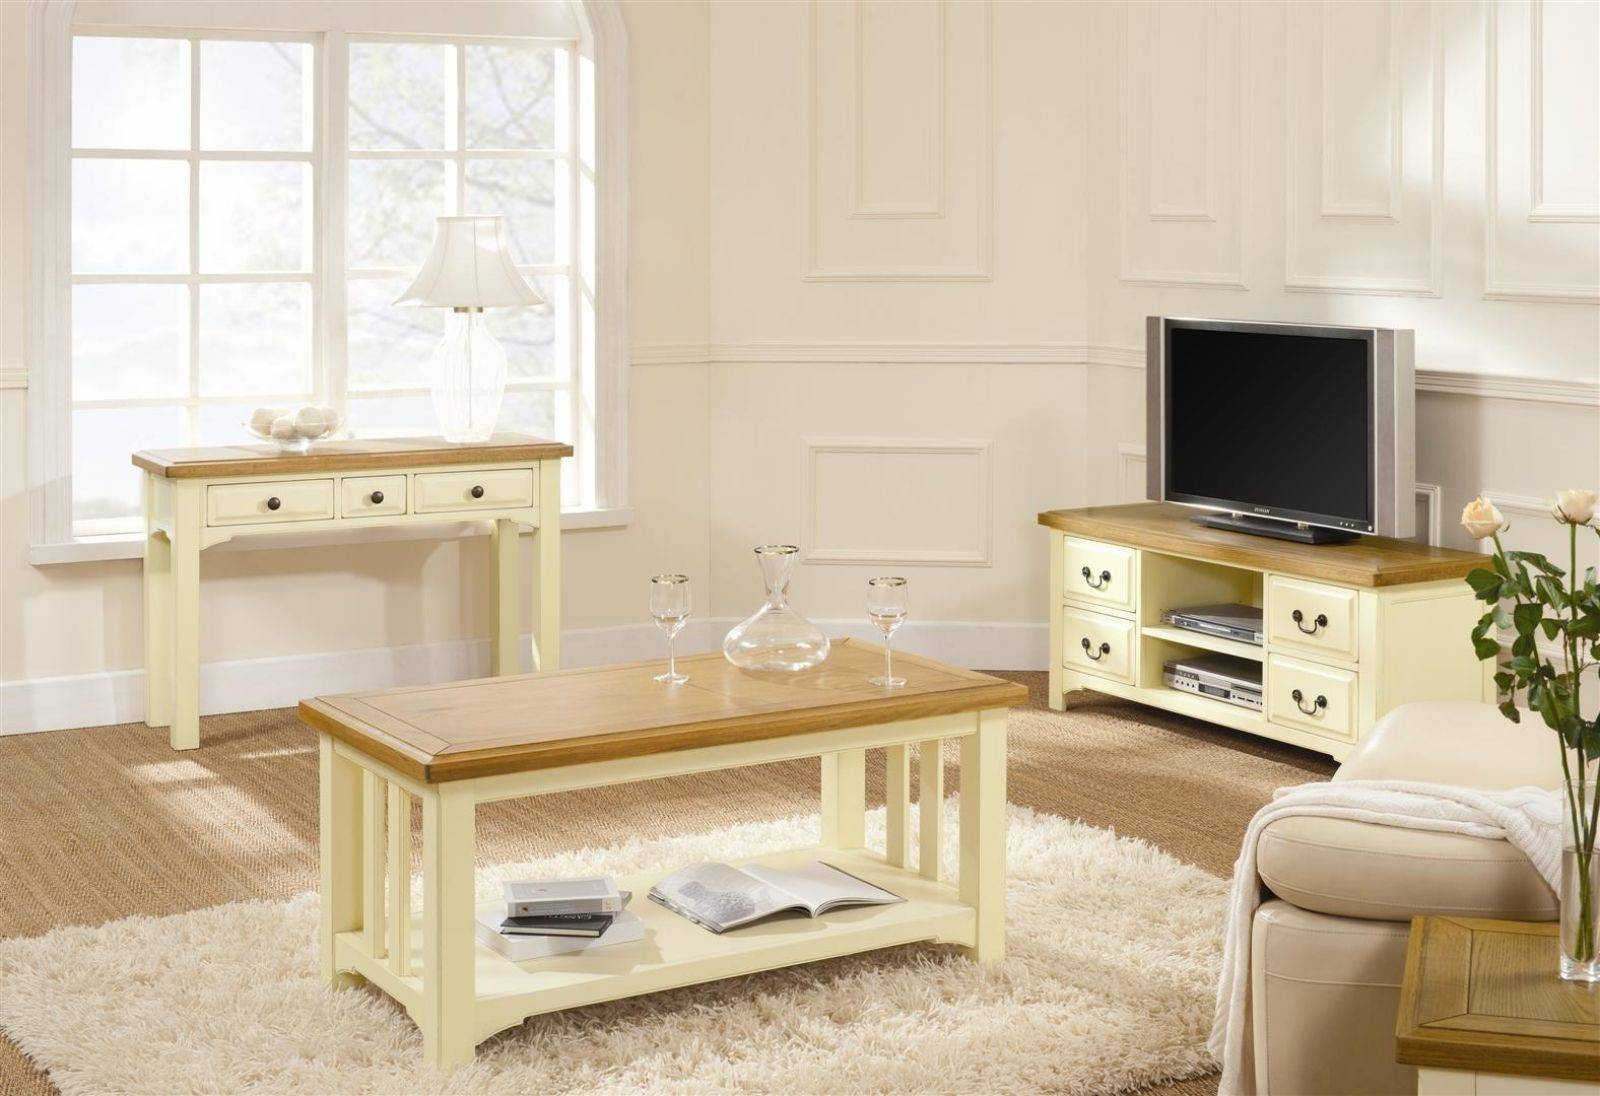 Furniture. French Country Coffee Table Ideas: Beige And Brown inside French Country Coffee Tables (Image 20 of 30)